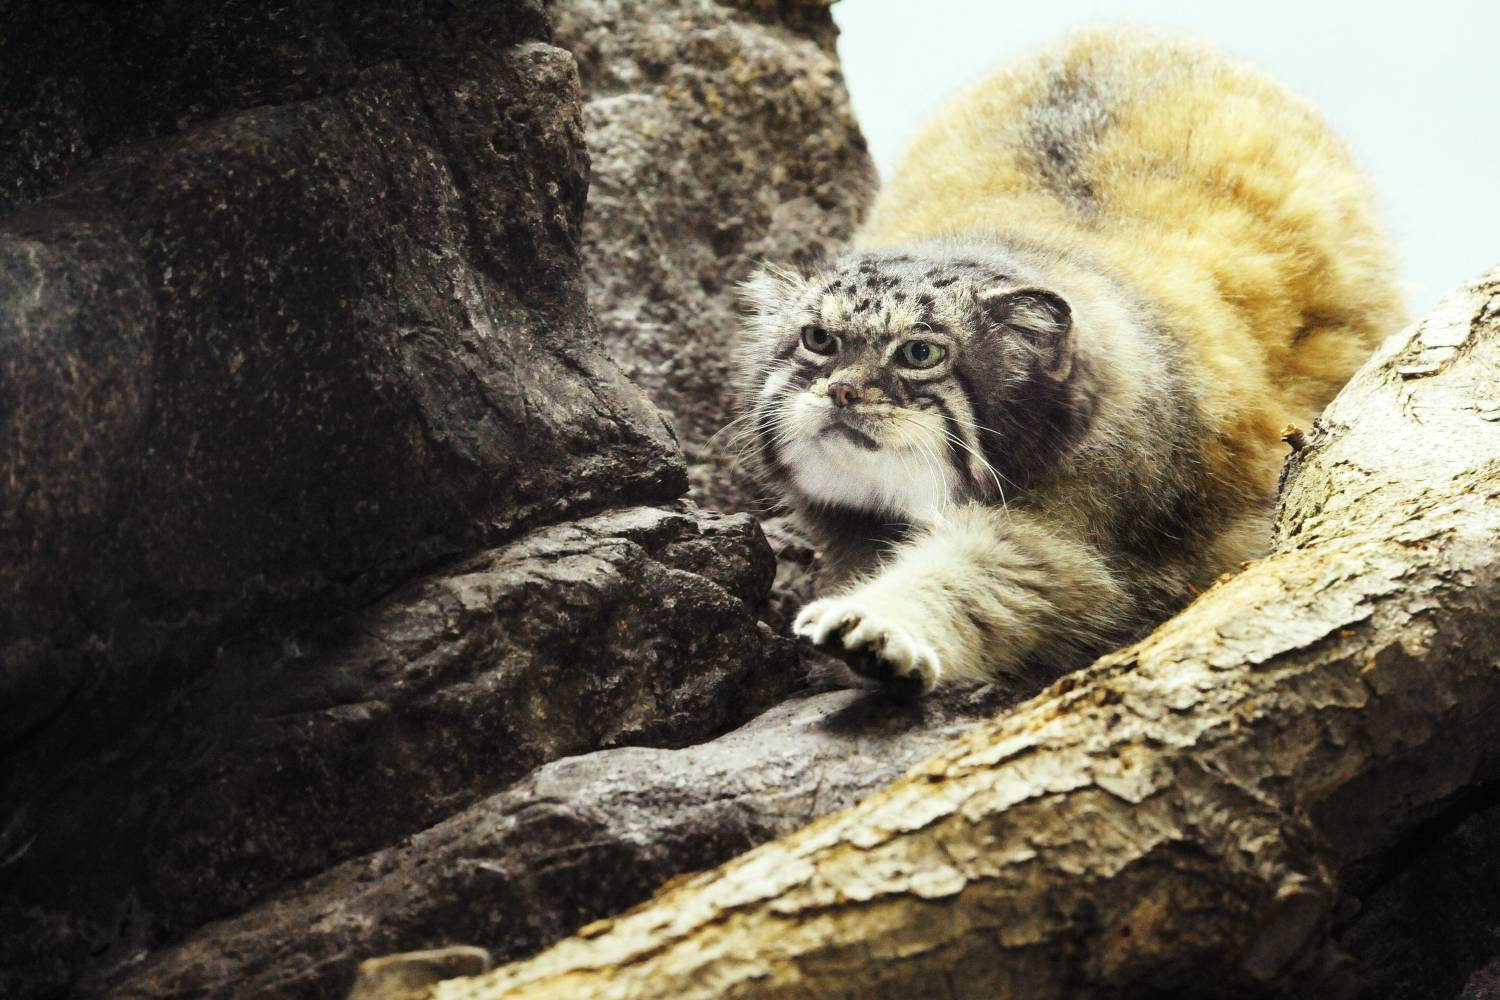 pallas cat at Prospect Park Zoo